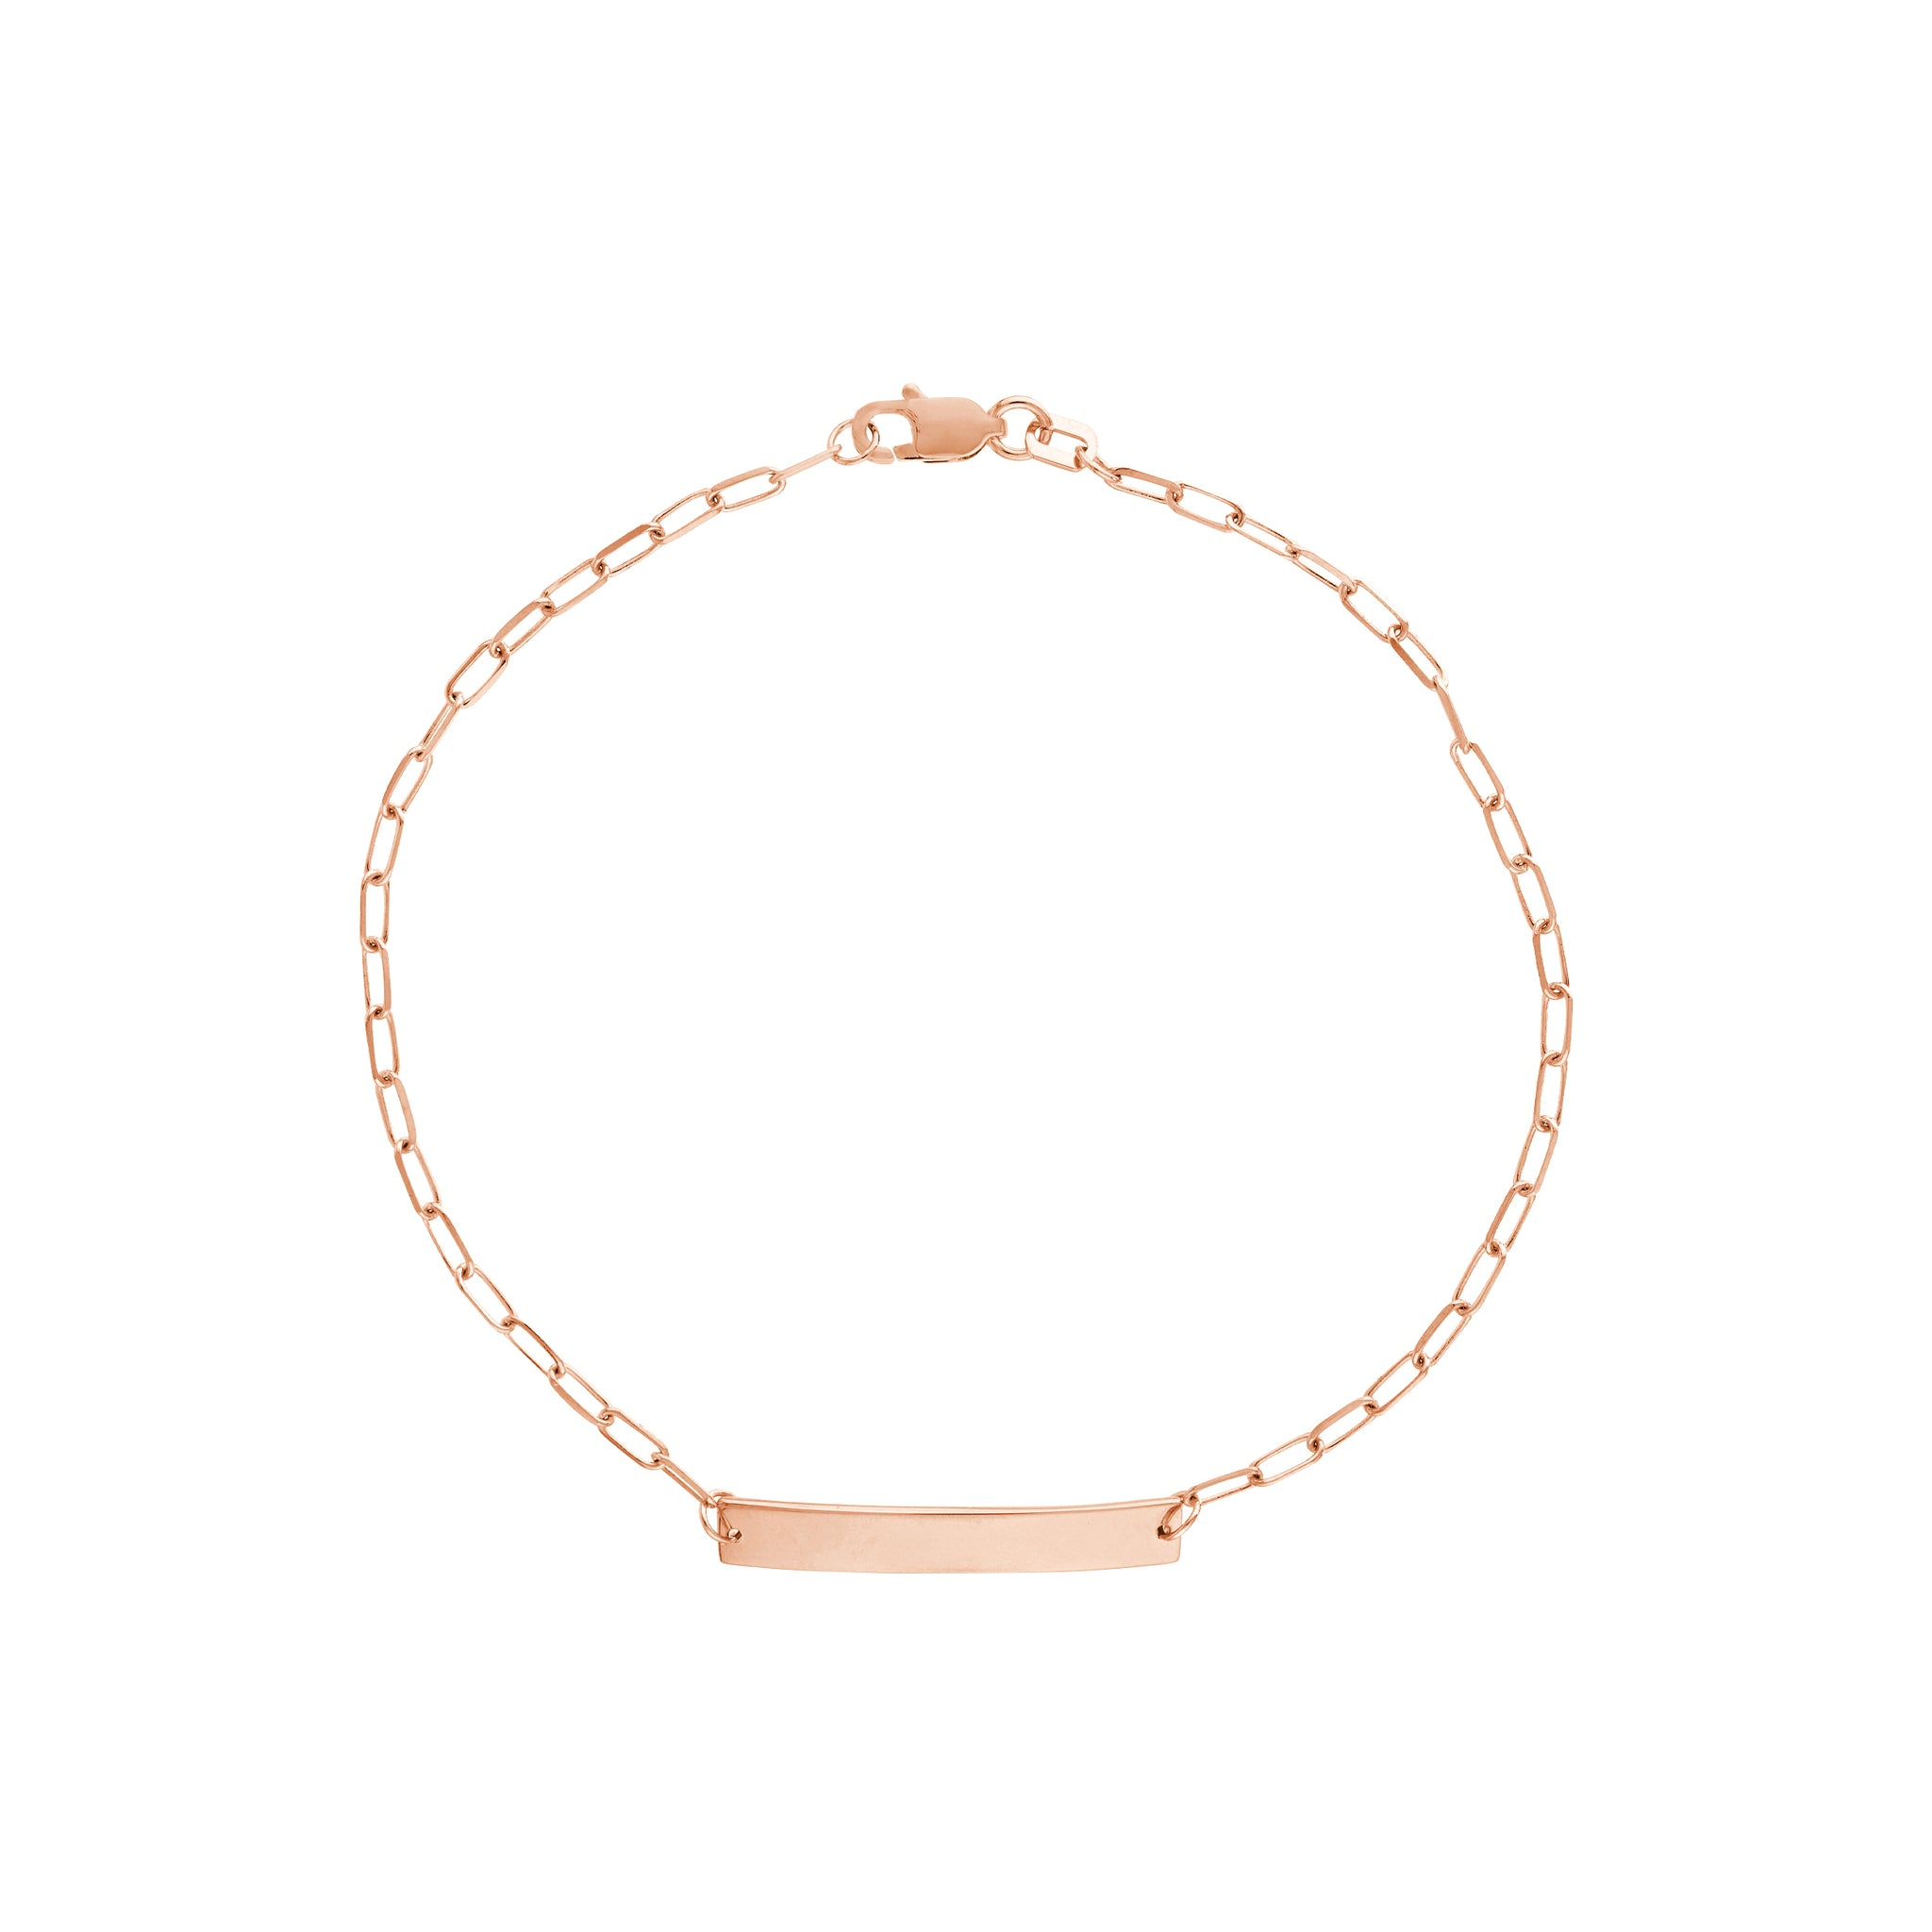 Hemsleys Baby Collection 14K Paperclip ID Bracelet